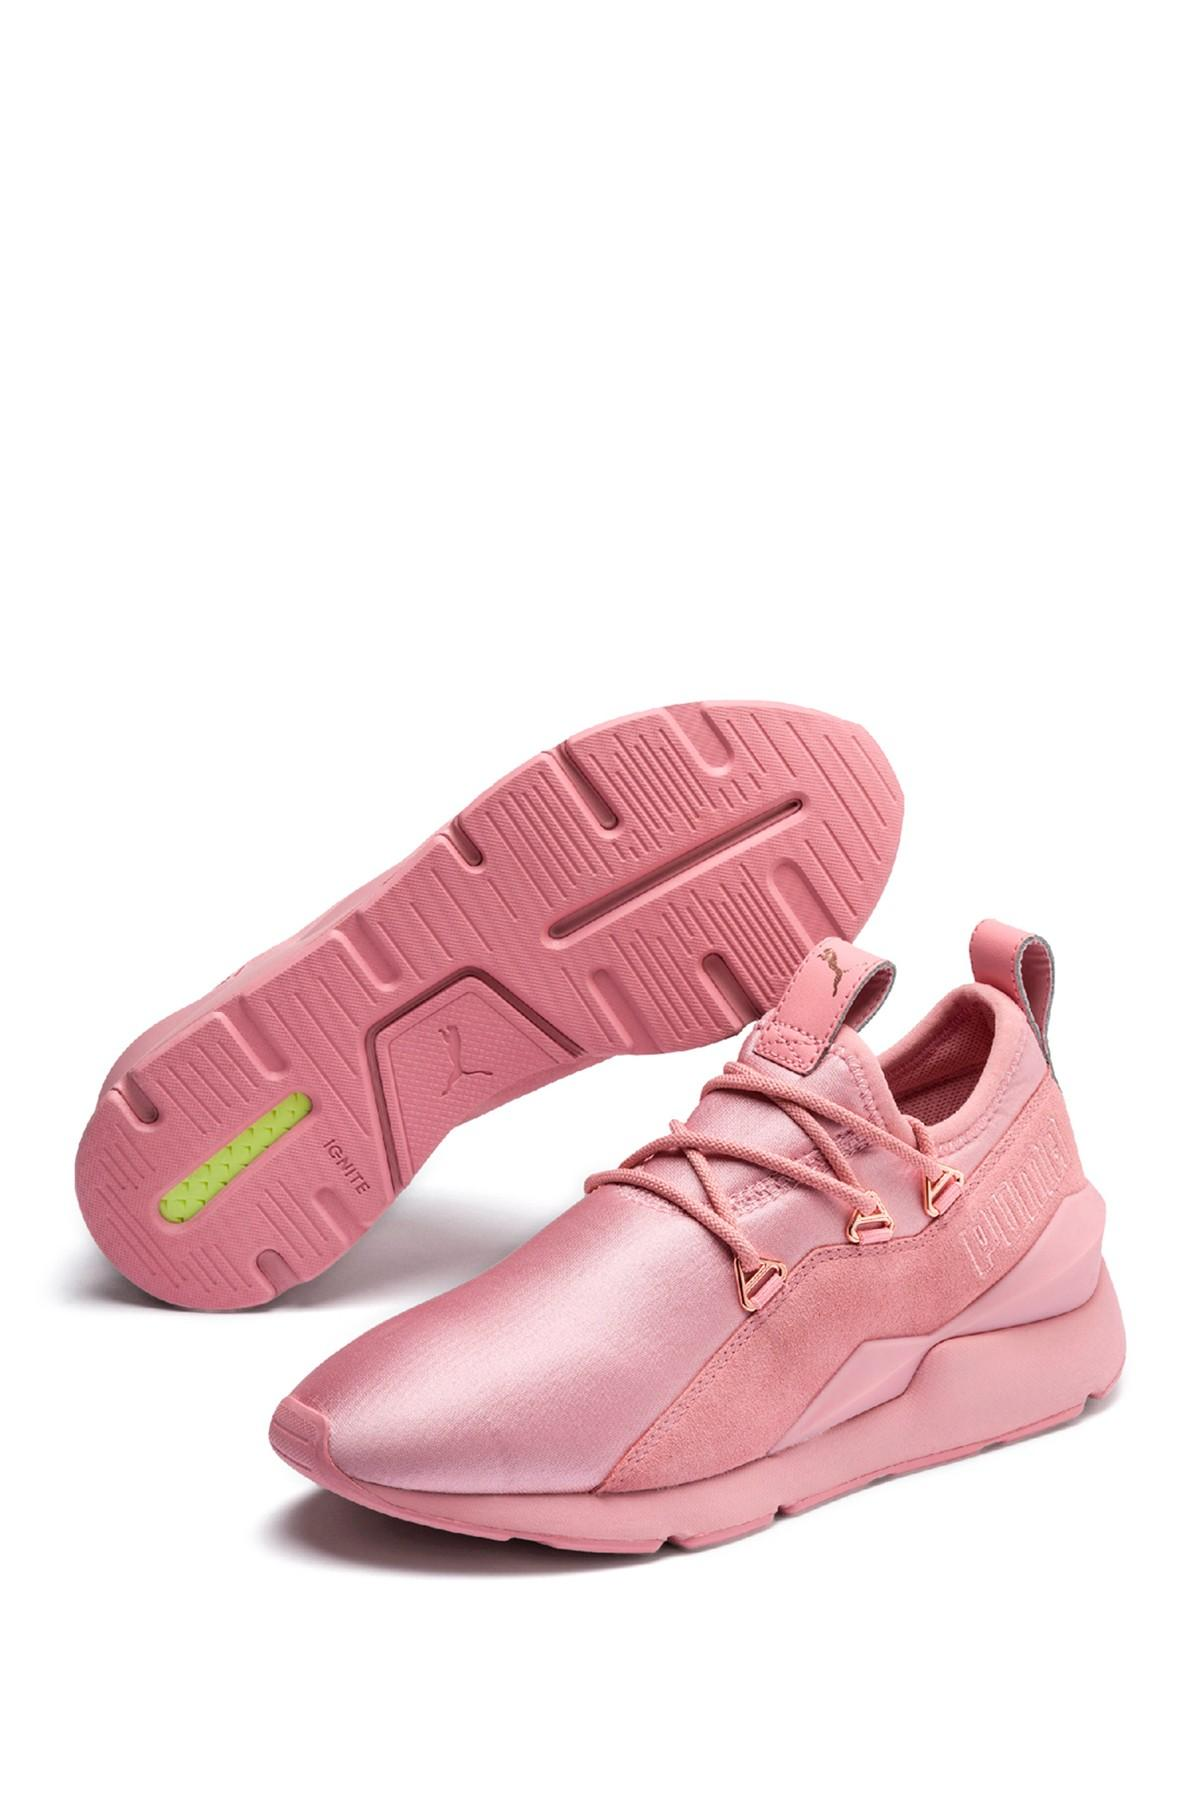 PUMA Suede Muse 2 Sneakers in Pink - Lyst